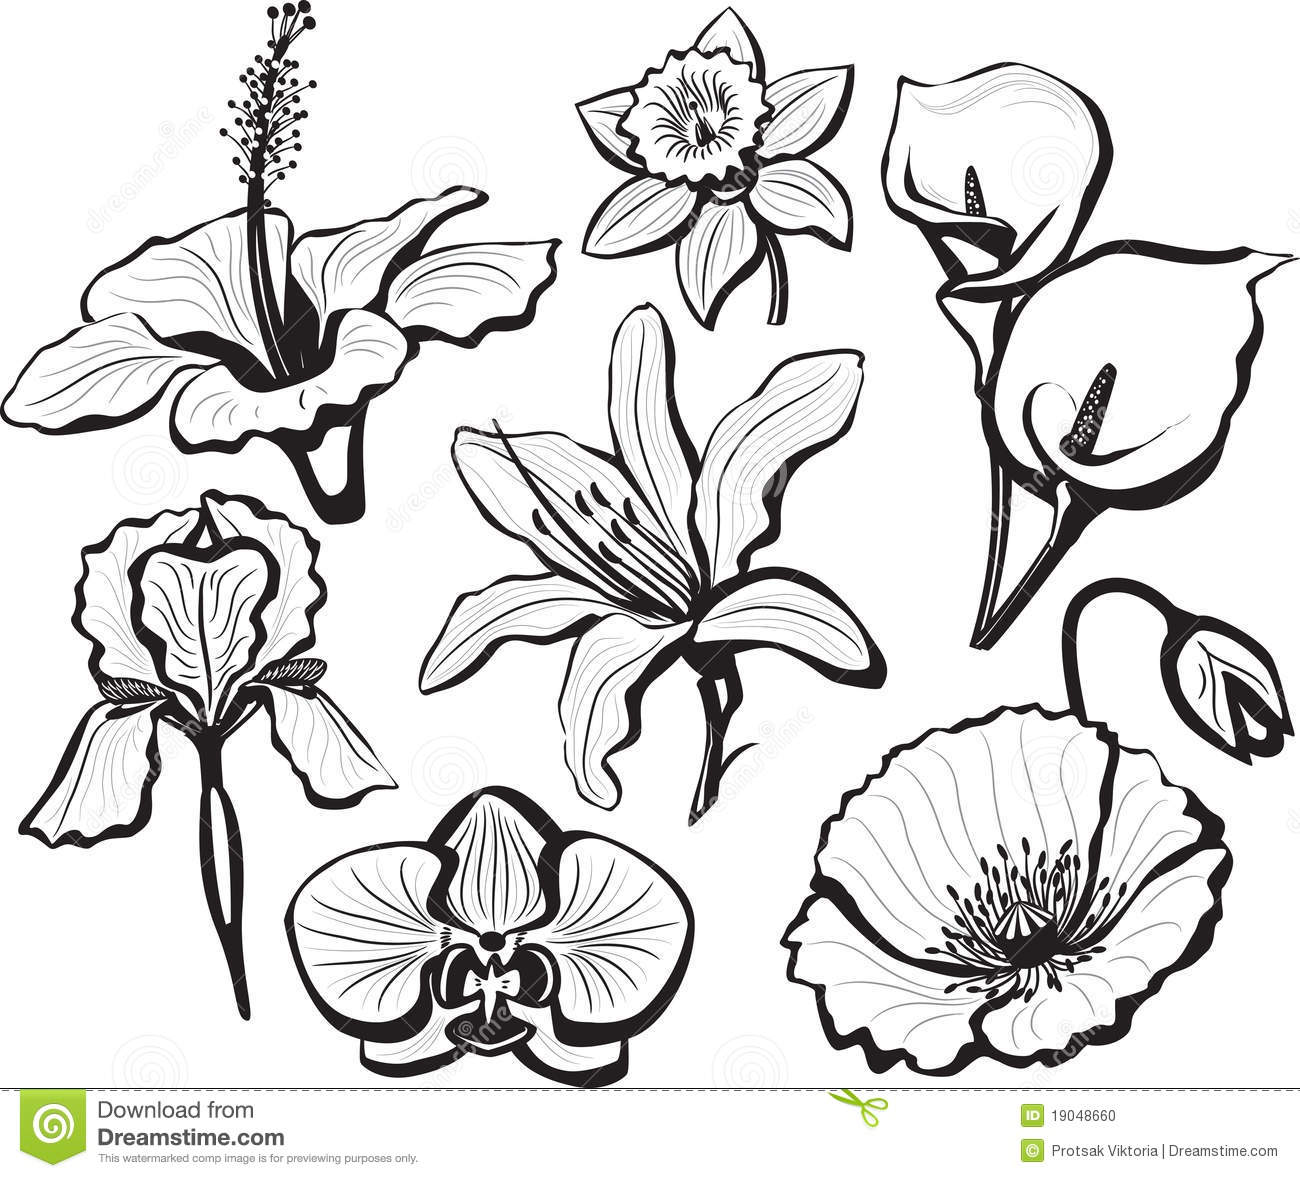 Simple black and white flower drawing comousar simple black and white flower drawing easy flower drawings in black mightylinksfo Choice Image